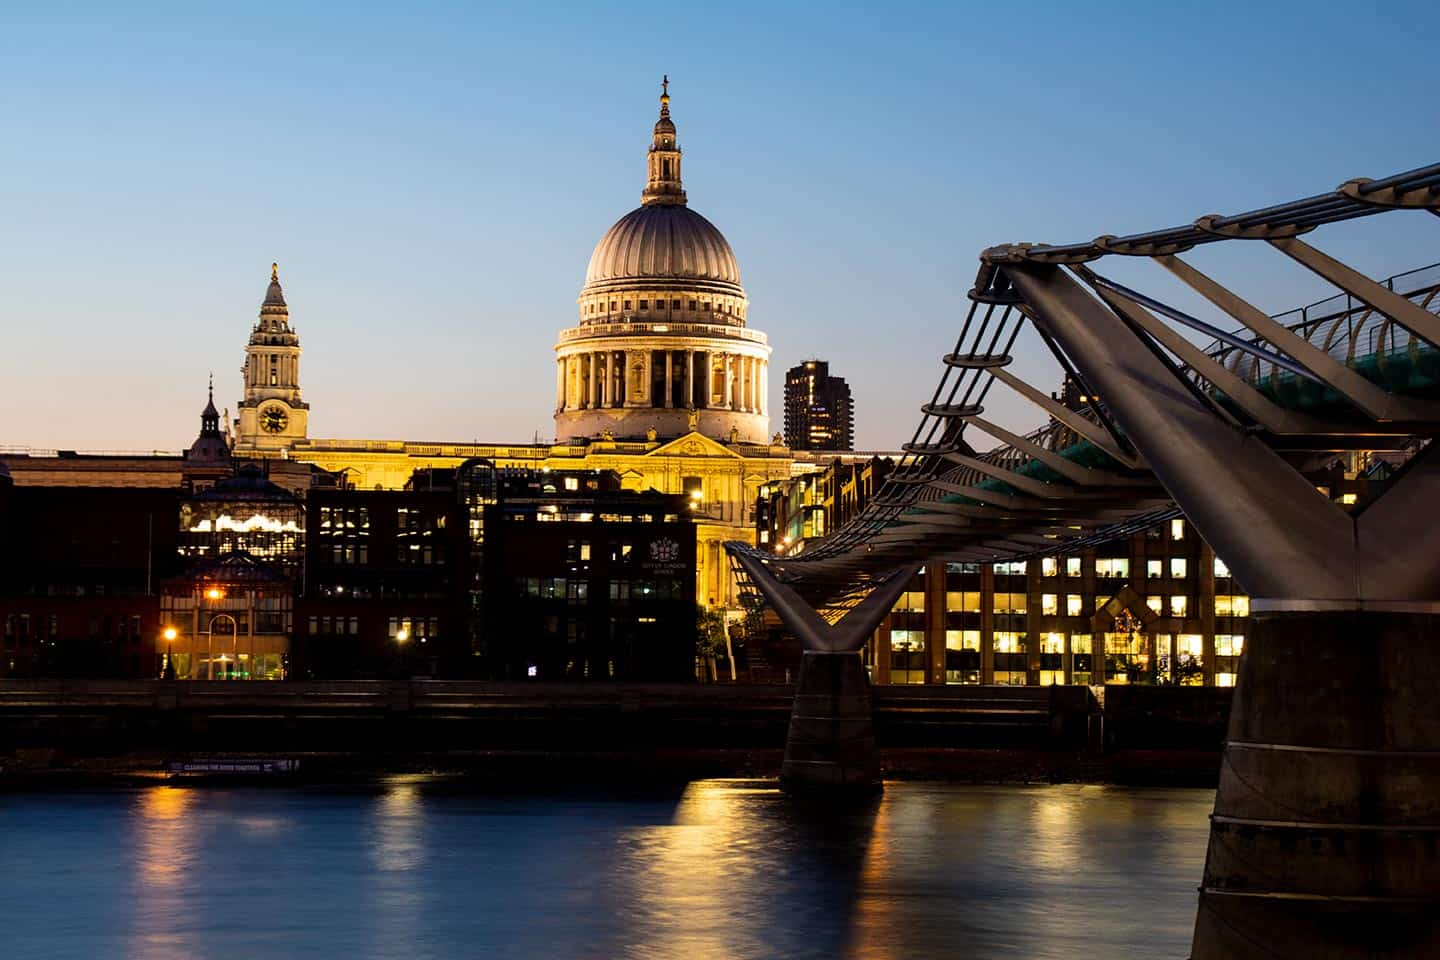 Image of the Millennium bridge and St Paul's Cathedral, London